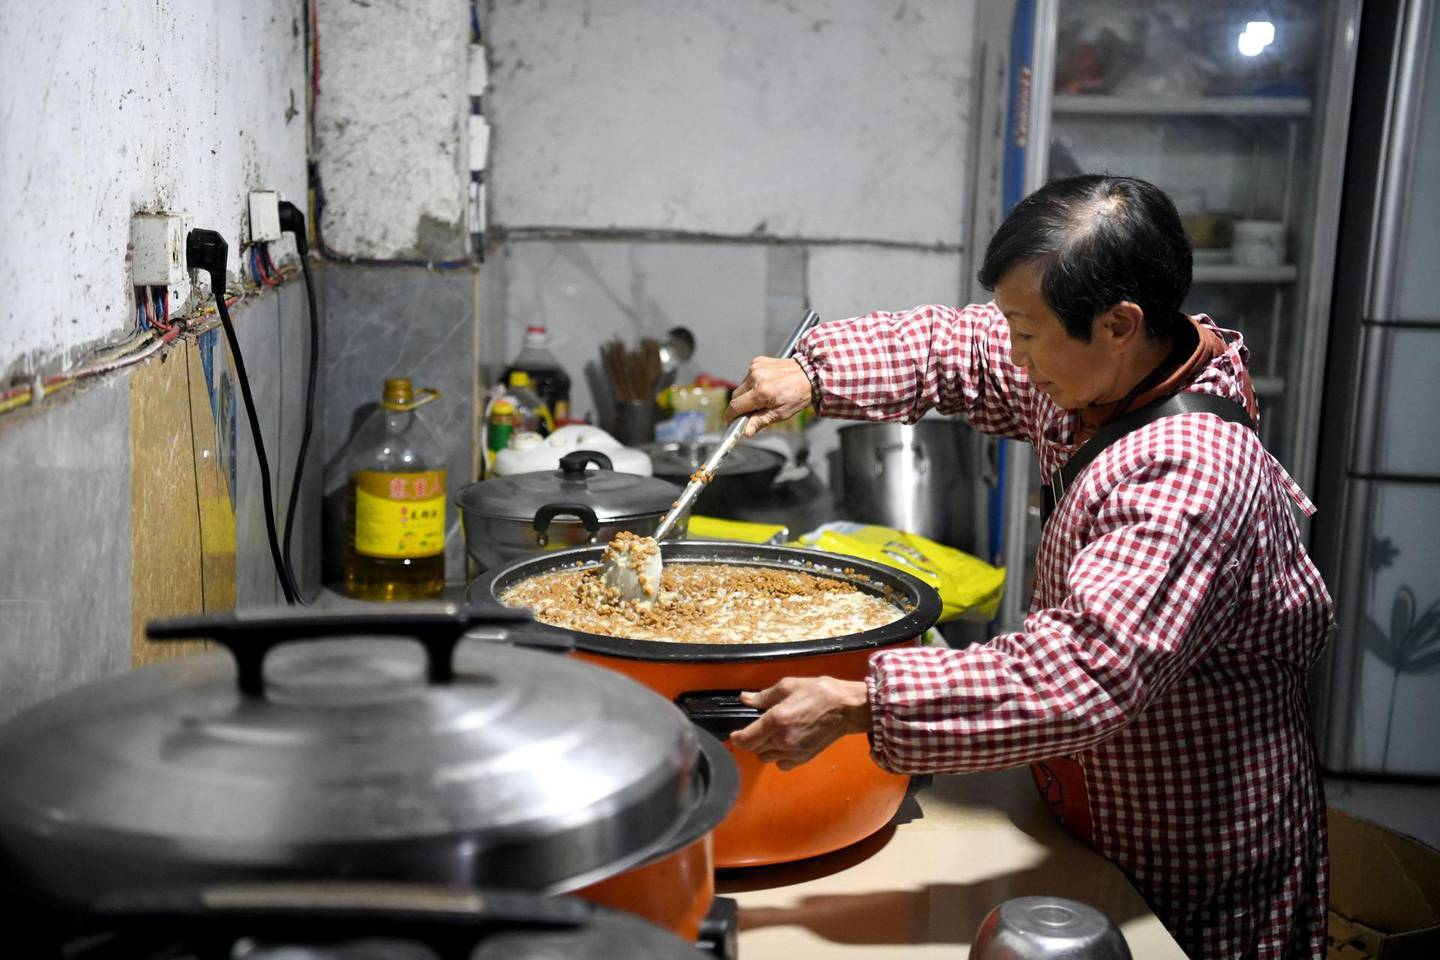 This photo taken on November 29, 2020 shows Wen Junhong preparing dog food at a home for rescued animals in Chongqing, southwestern China.     Twenty years ago, Wen Junhong saved an abandoned dog from the streets of Chongqing in southwestern China. She now shares her home with more than 1,300 of them, and they keep on coming.  - TO GO WITH AFP STORY CHINA-ANIMAL-RESCUE,FOCUS BY HELEN ROXBURGH AND QIAN YE  / AFP / NOEL CELIS / TO GO WITH AFP STORY CHINA-ANIMAL-RESCUE,FOCUS BY HELEN ROXBURGH AND QIAN YE